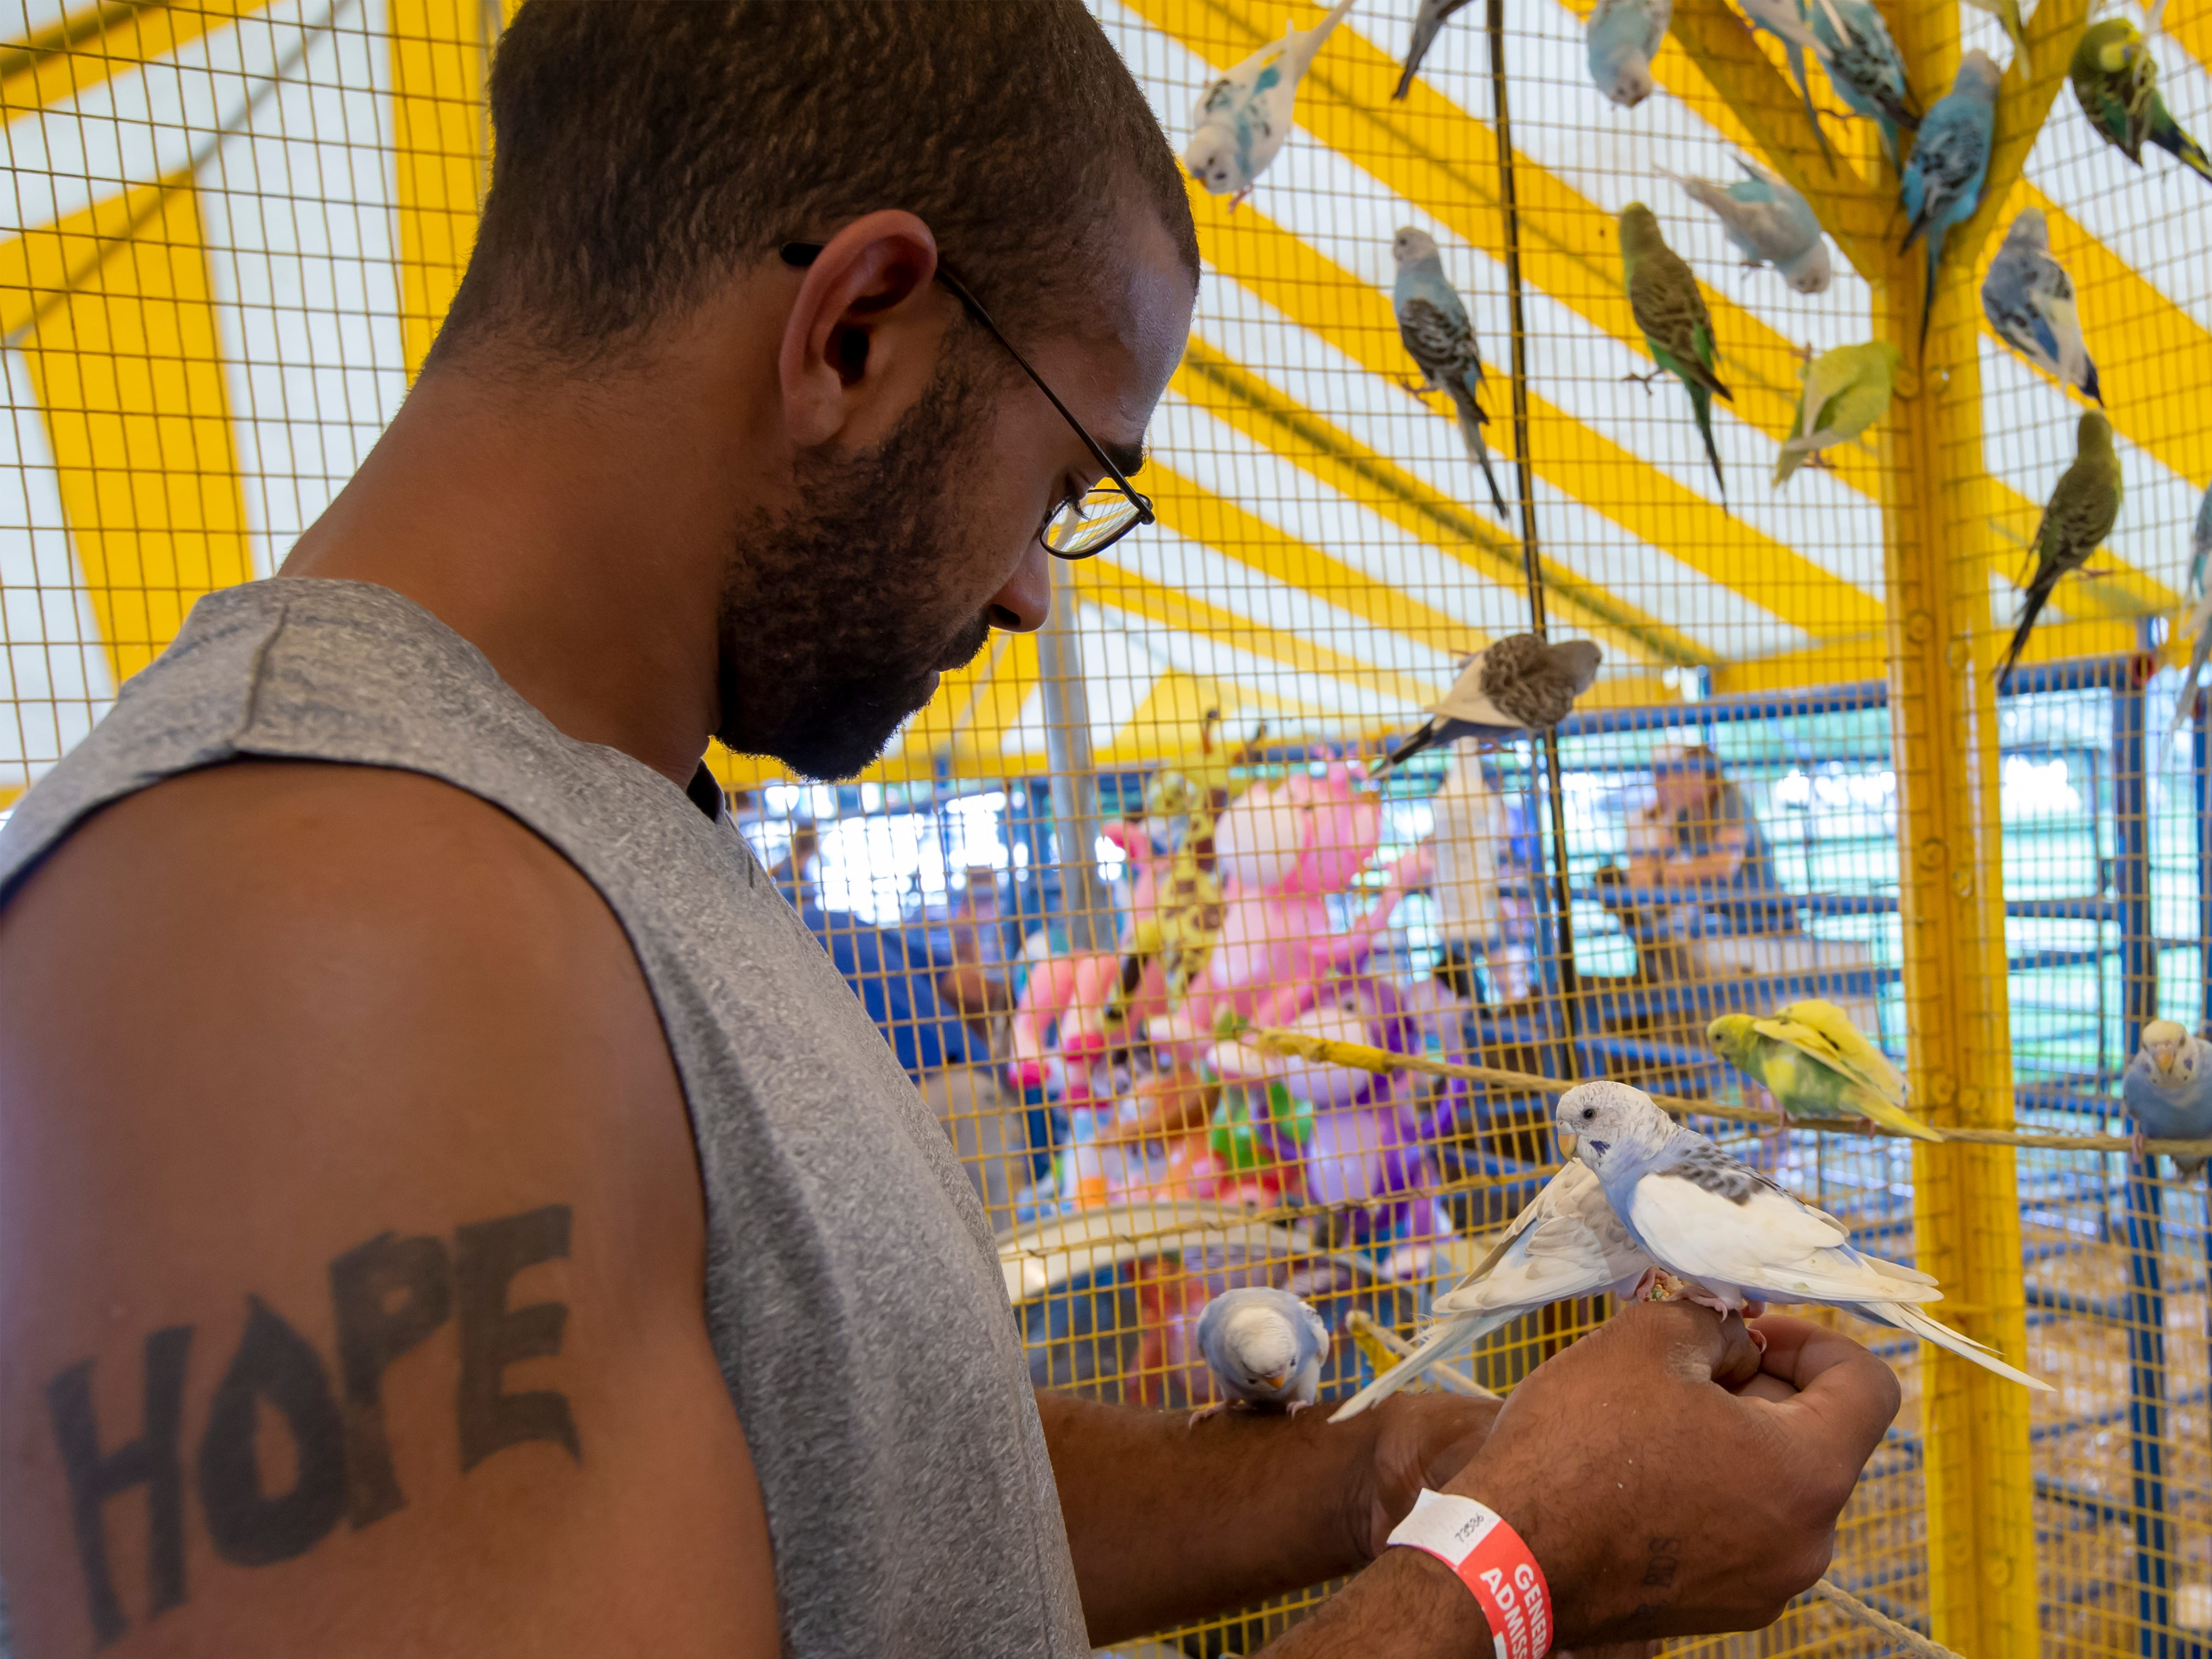 Mark Thurston's hands are covered with parakeets while visiting the petting zoo during the Winnebago County Fair on Saturday, Aug. 4, 2018.